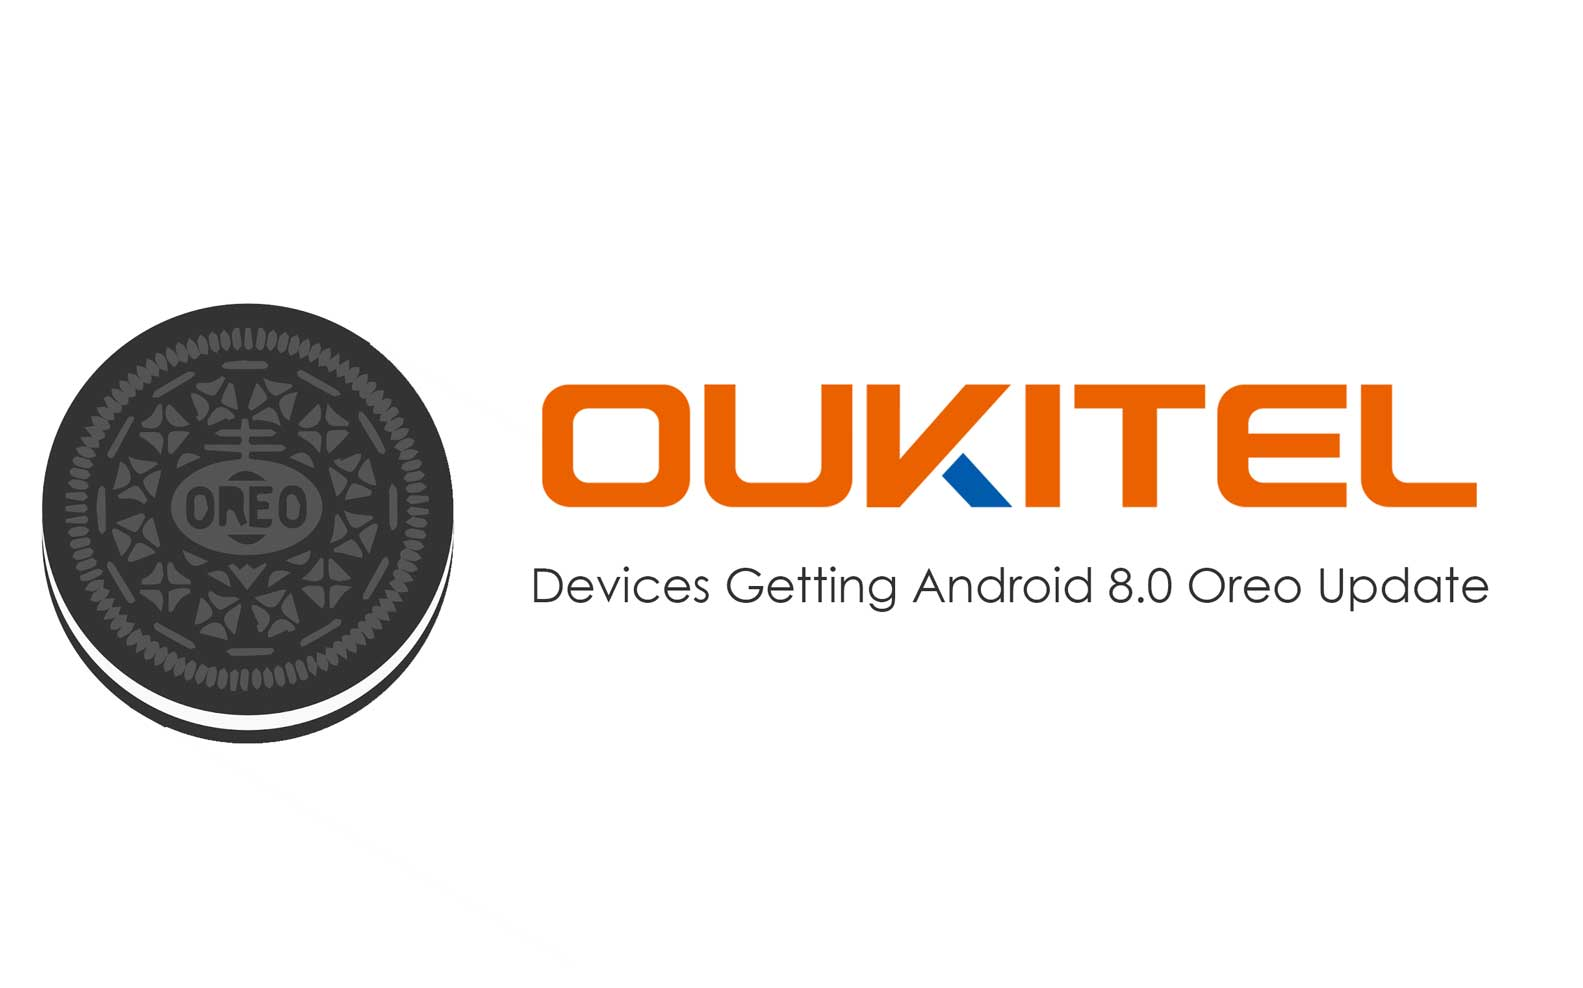 List-of-Oukitel-Devices-Getting-Android-8.0-Oreo-Update Lista de Smartphones da Oukitel que vão receber Android 8.0 Oreo